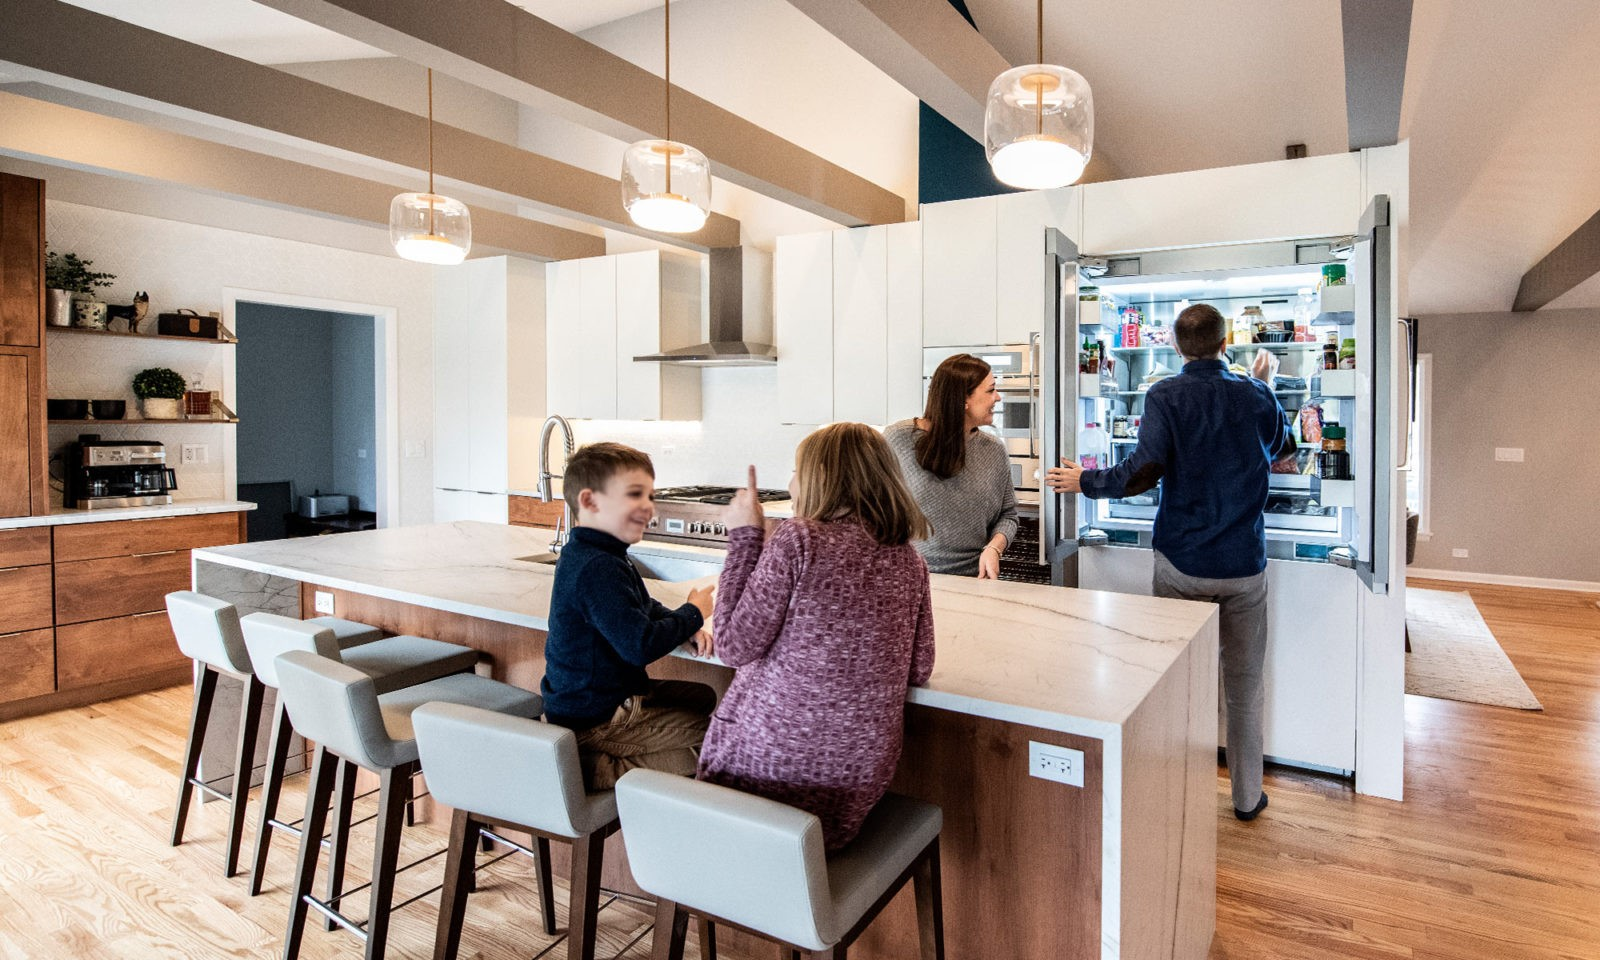 family of 4 in kitchen with large waterfall countertop island white cabinets glass pendant lighting